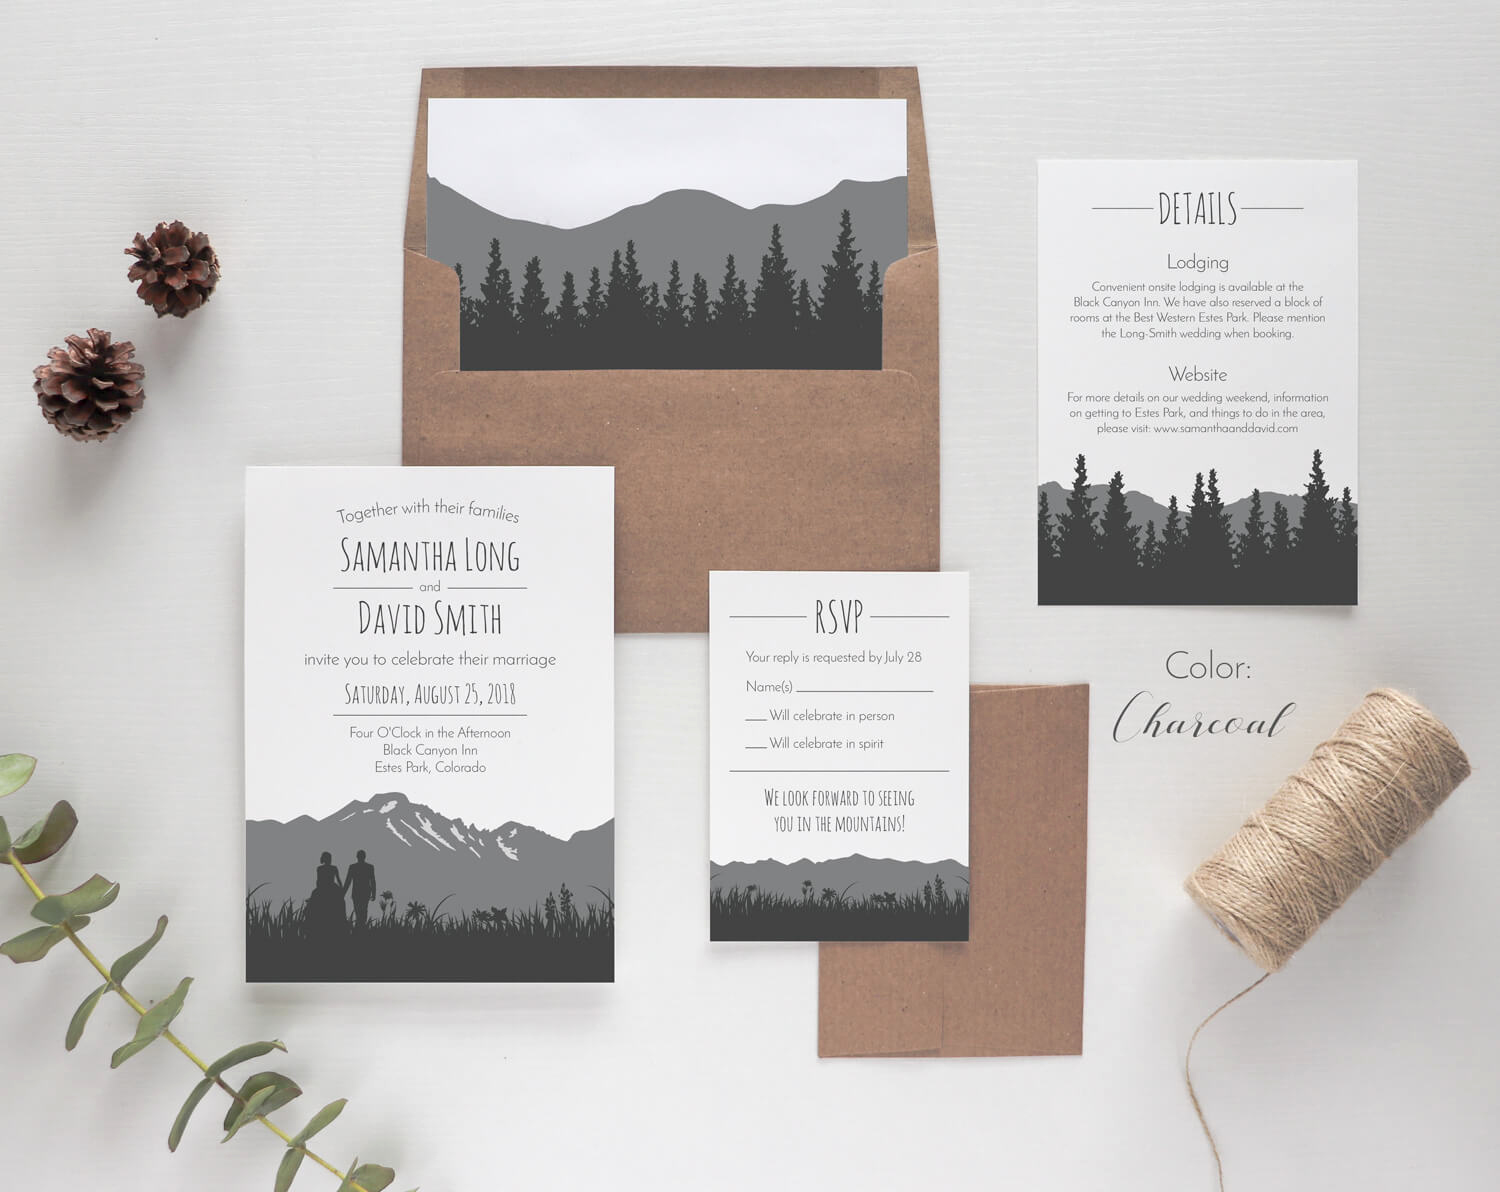 Rustic Wedding Invitation Sets Elegant Rustic Mountain Wedding Invitation Sets